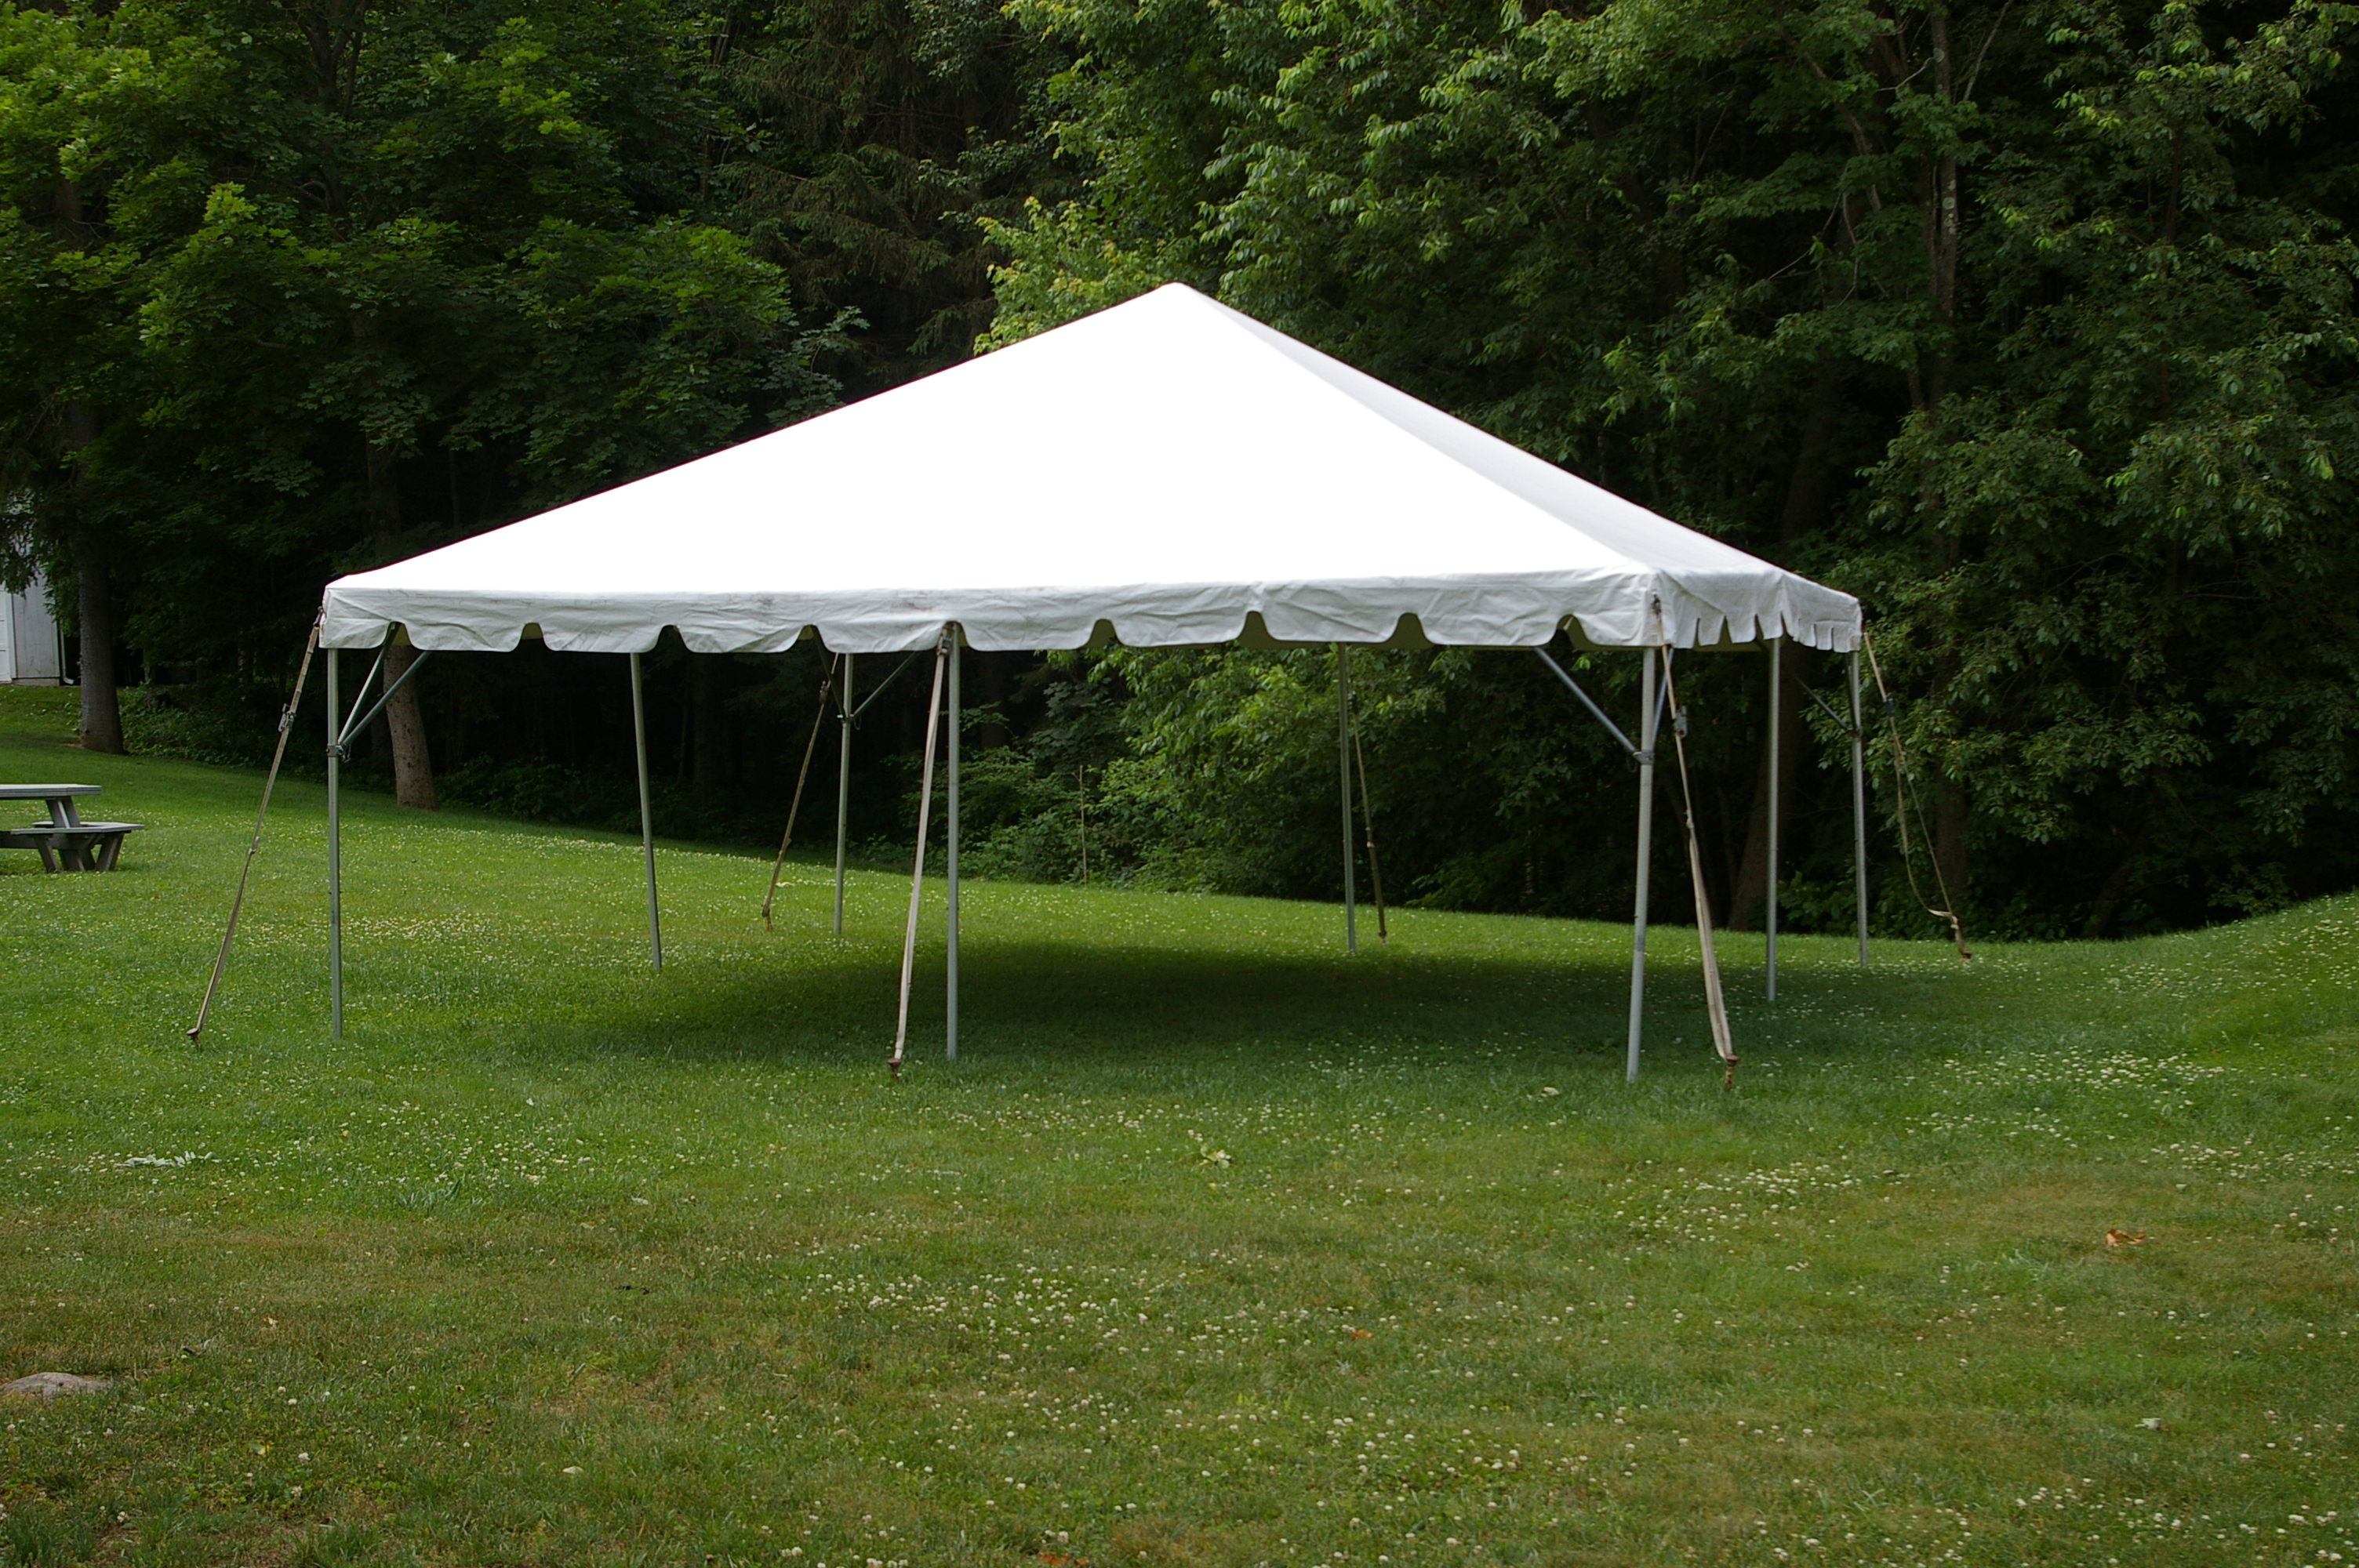 20 x 20 frame tent 345